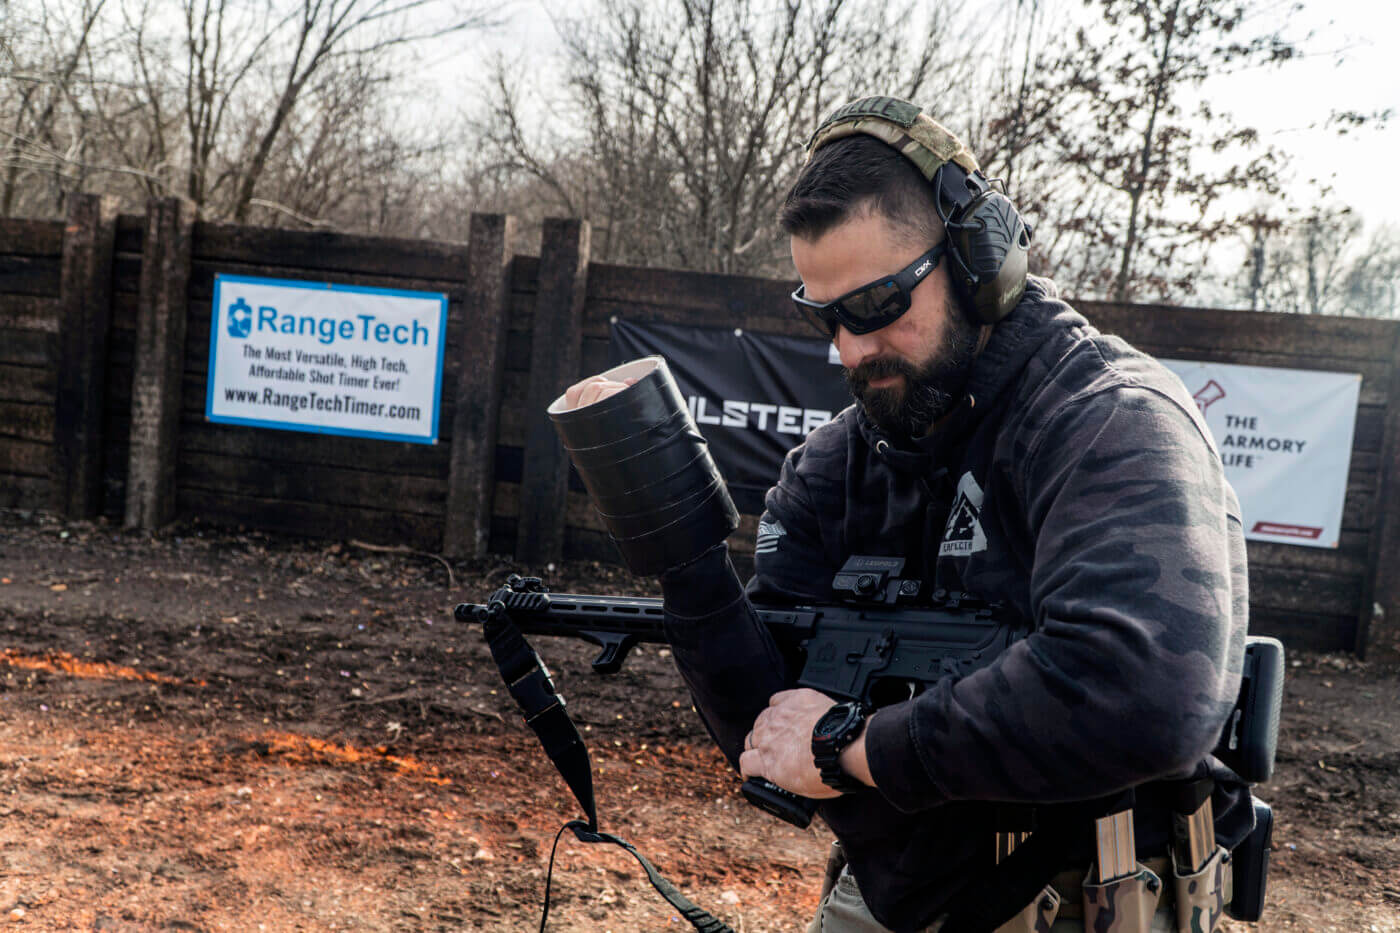 Shooting an AR-15 with one hand